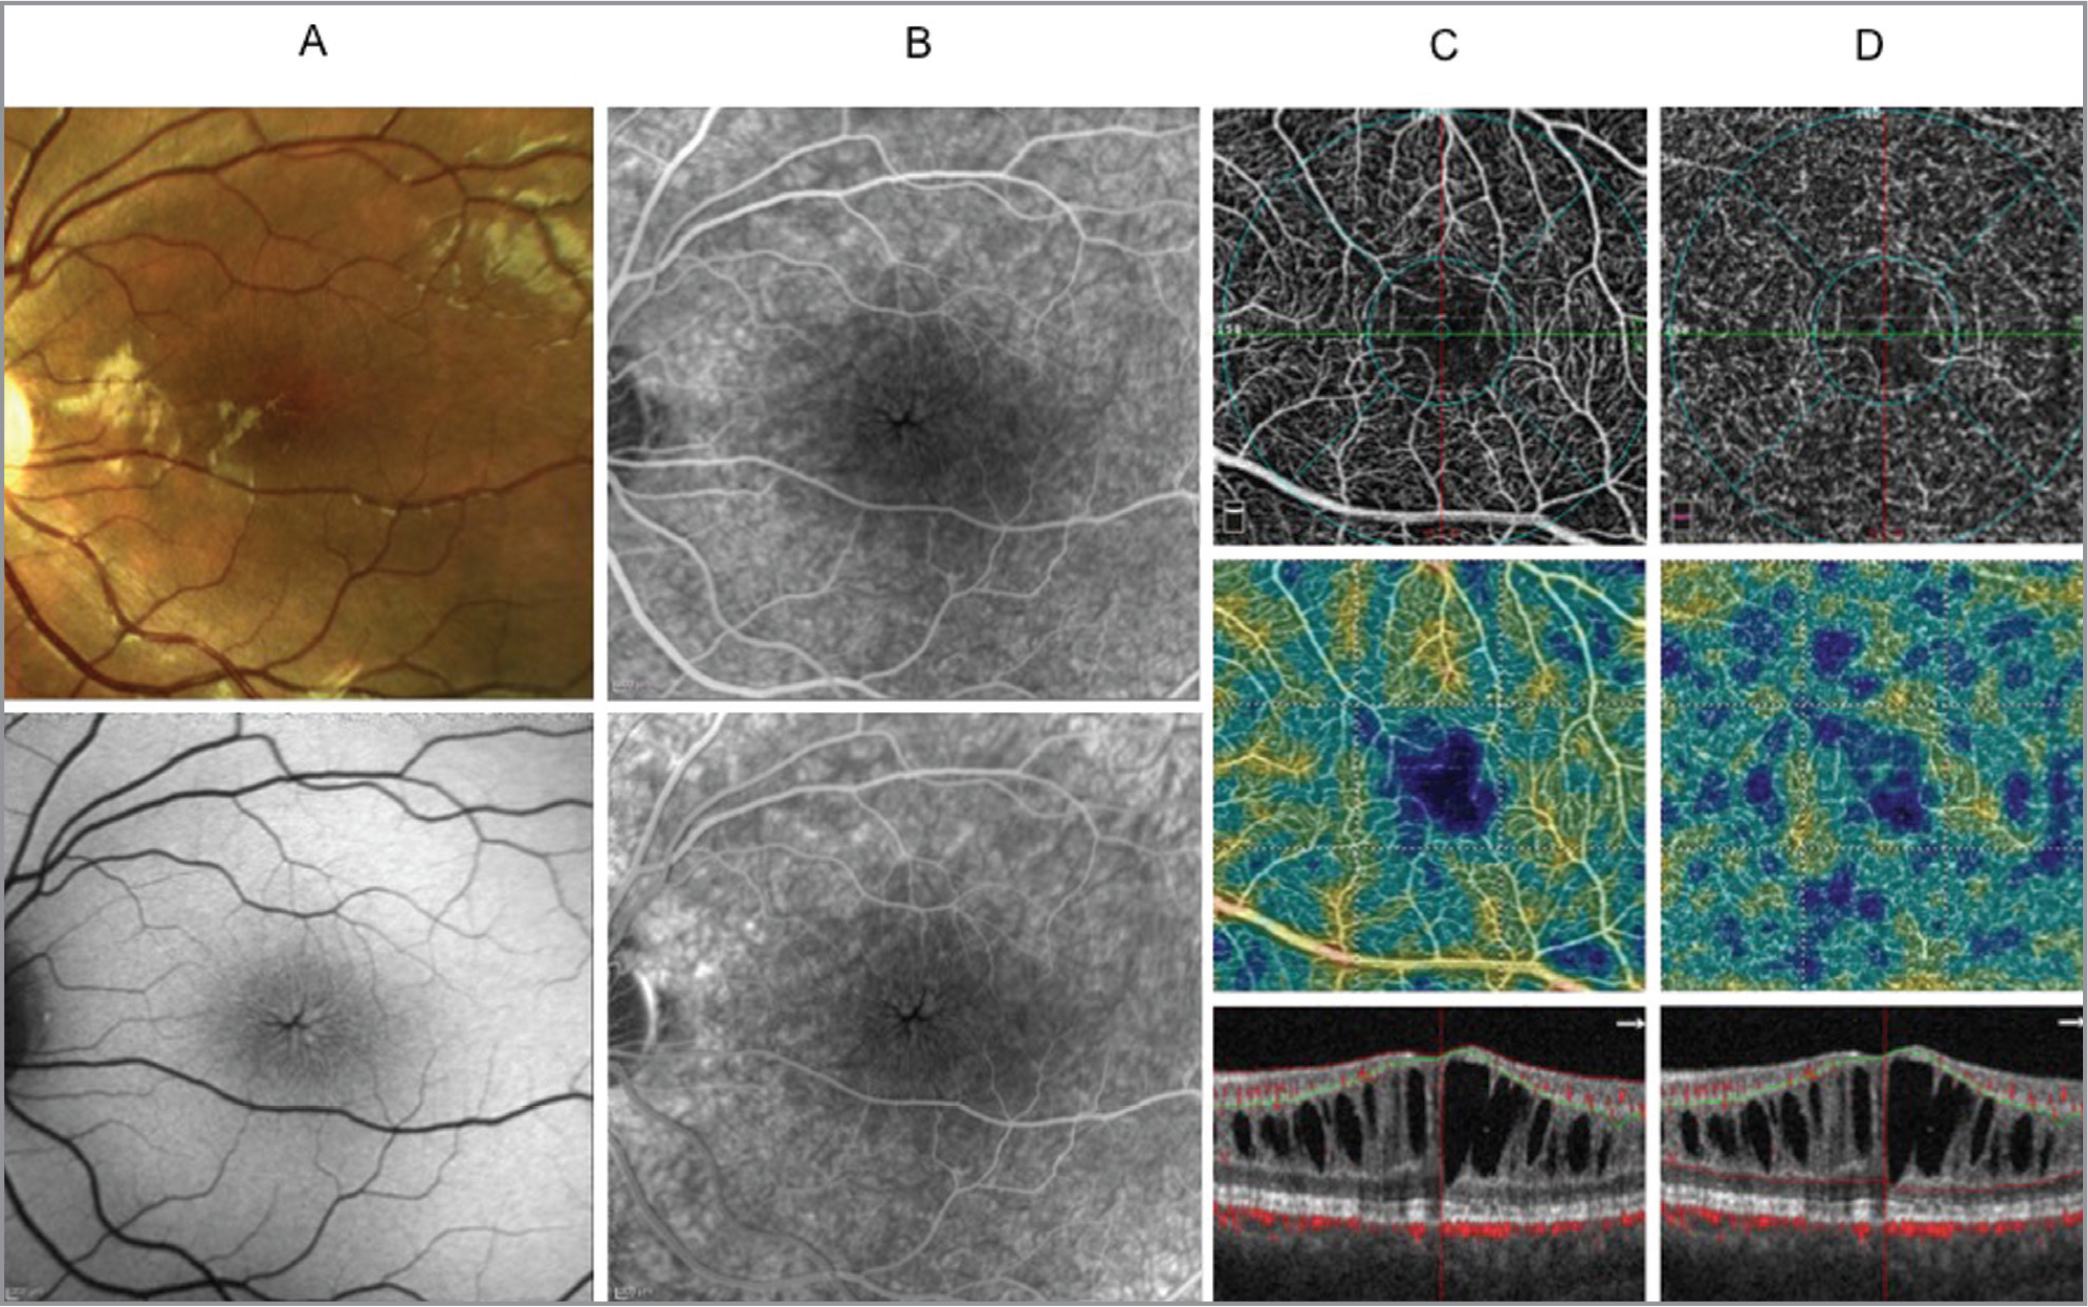 Images of the left eye of the proband (III:3). Color fundus photograph showing a spoke-wheel pattern of fold-like changes radiating out from the fovea (A, top panel). Fundus autofluorescence (FAF) showing spoke-wheel pattern of hyper- and hypo-FAF (A, bottom panel). Early and late fundus fluorescein angiography (FFA) showing macular schisis cavities were not associated with late leakage (B, top and bottom panels). Optical coherence tomography (OCT) angiography of the superficial plexus (B, top panel) and deep plexus (C, top panel) with corresponding perfusion vessel density maps (B and C, middle panels, respectively) showing vessel rarefaction in the superficial plexus and deep plexus with no flow areas of cystoid appearance in the deep plexus. Corresponding structural OCT horizontal scan spectral-domain OCT images from the vertical and horizontal scans centered on the fovea showed schisis in the ganglion cell layer in the parafoveal region and in the inner nuclear layer from the foveal to the extrafoveal region (B and C, bottom panel).